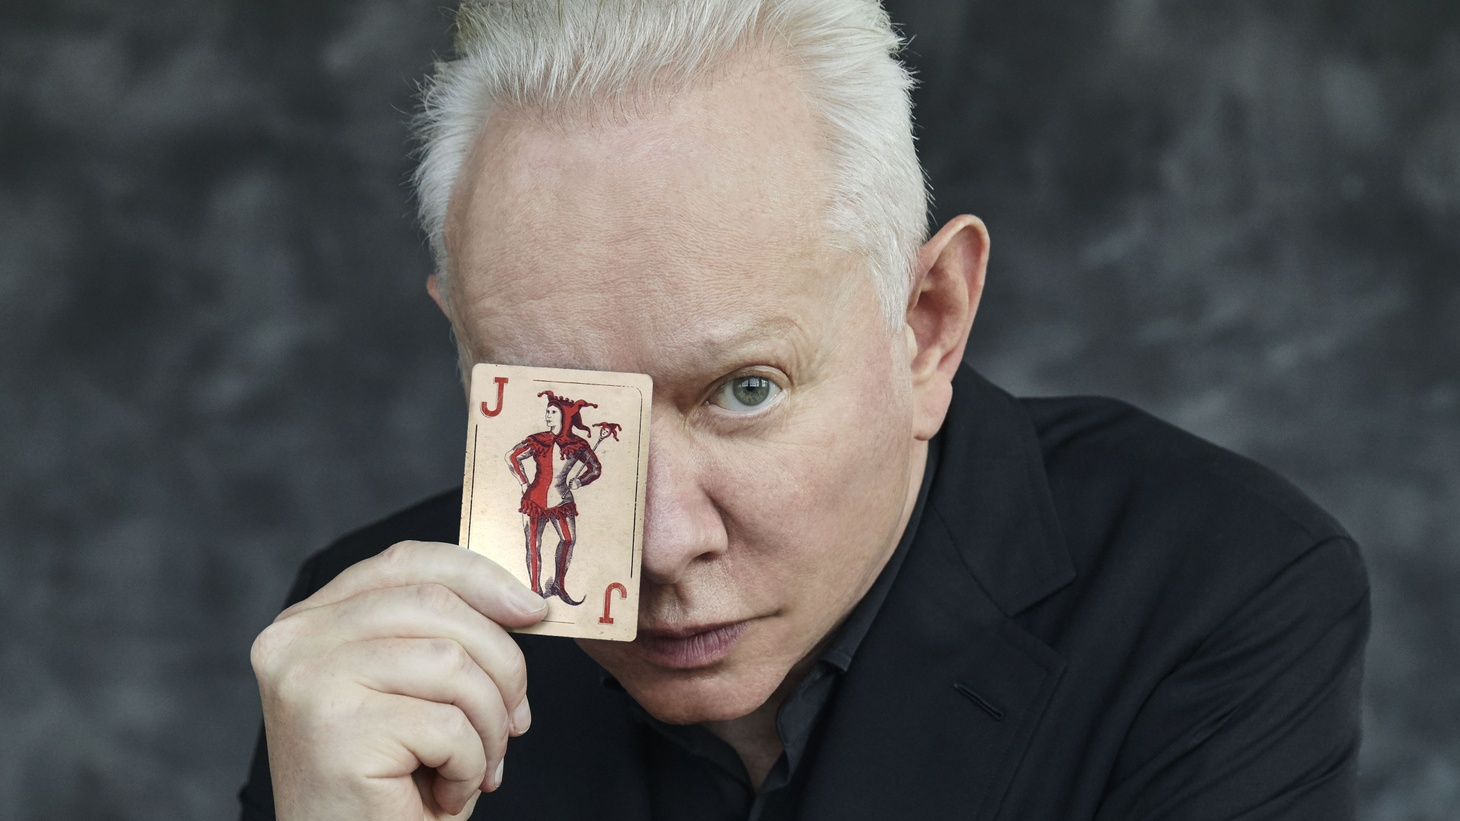 40 years into his career, legendary songwriter Joe Jackson returns with his 20th studio album in early 2019.